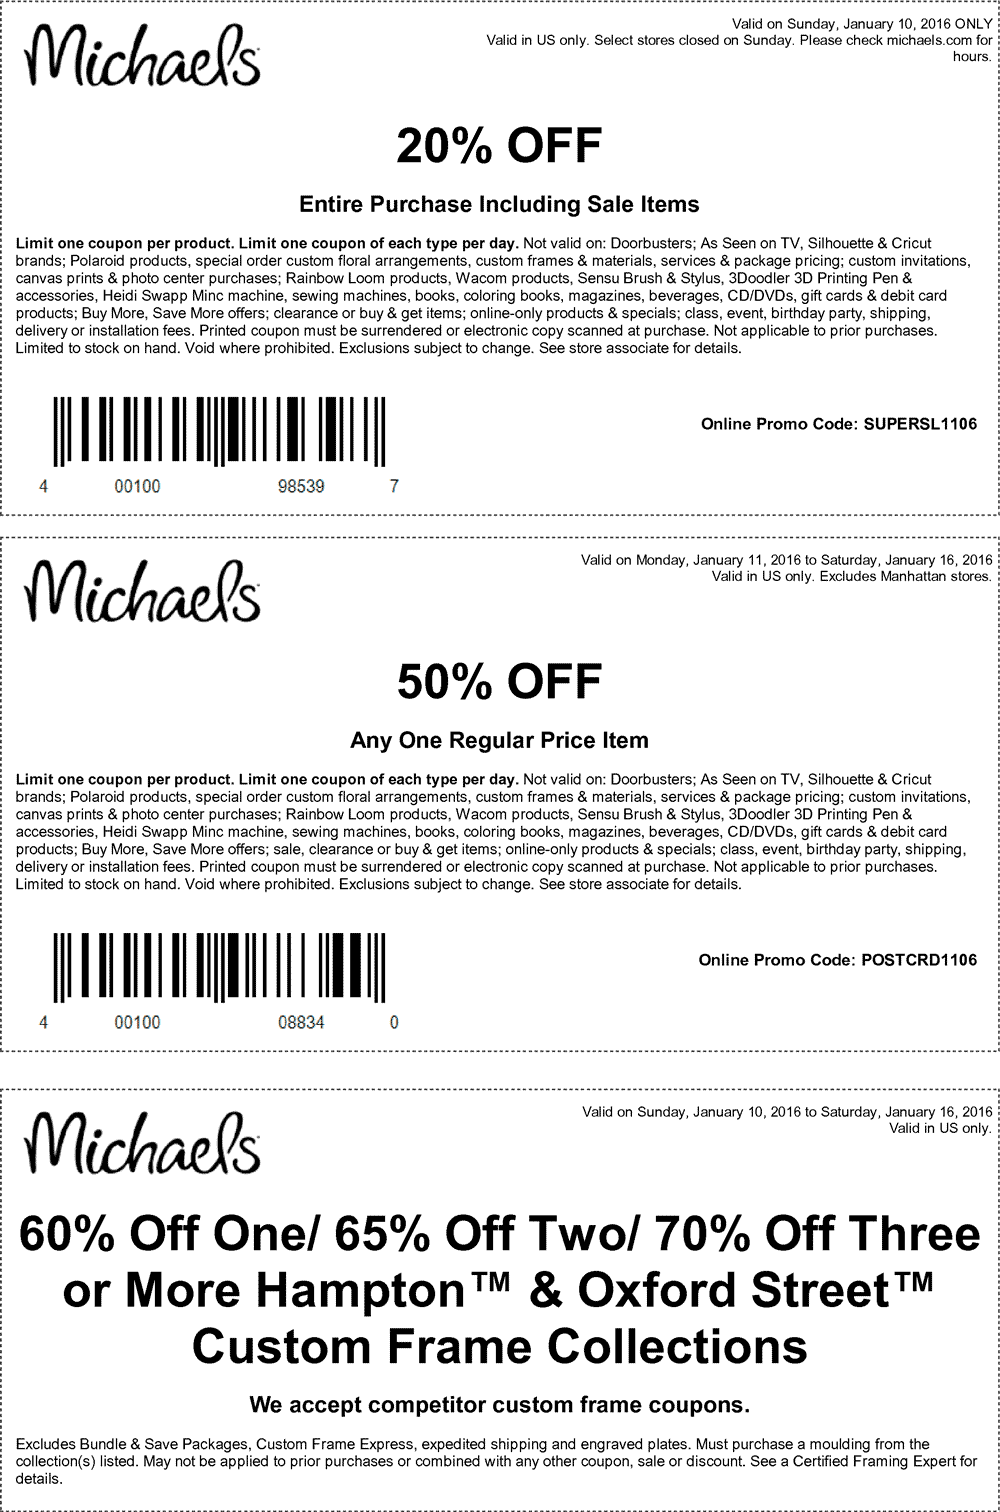 Michaels Coupon May 2017 20% off everything, 50% off a single item at Michaels, or online via promo code POSTCRD1106